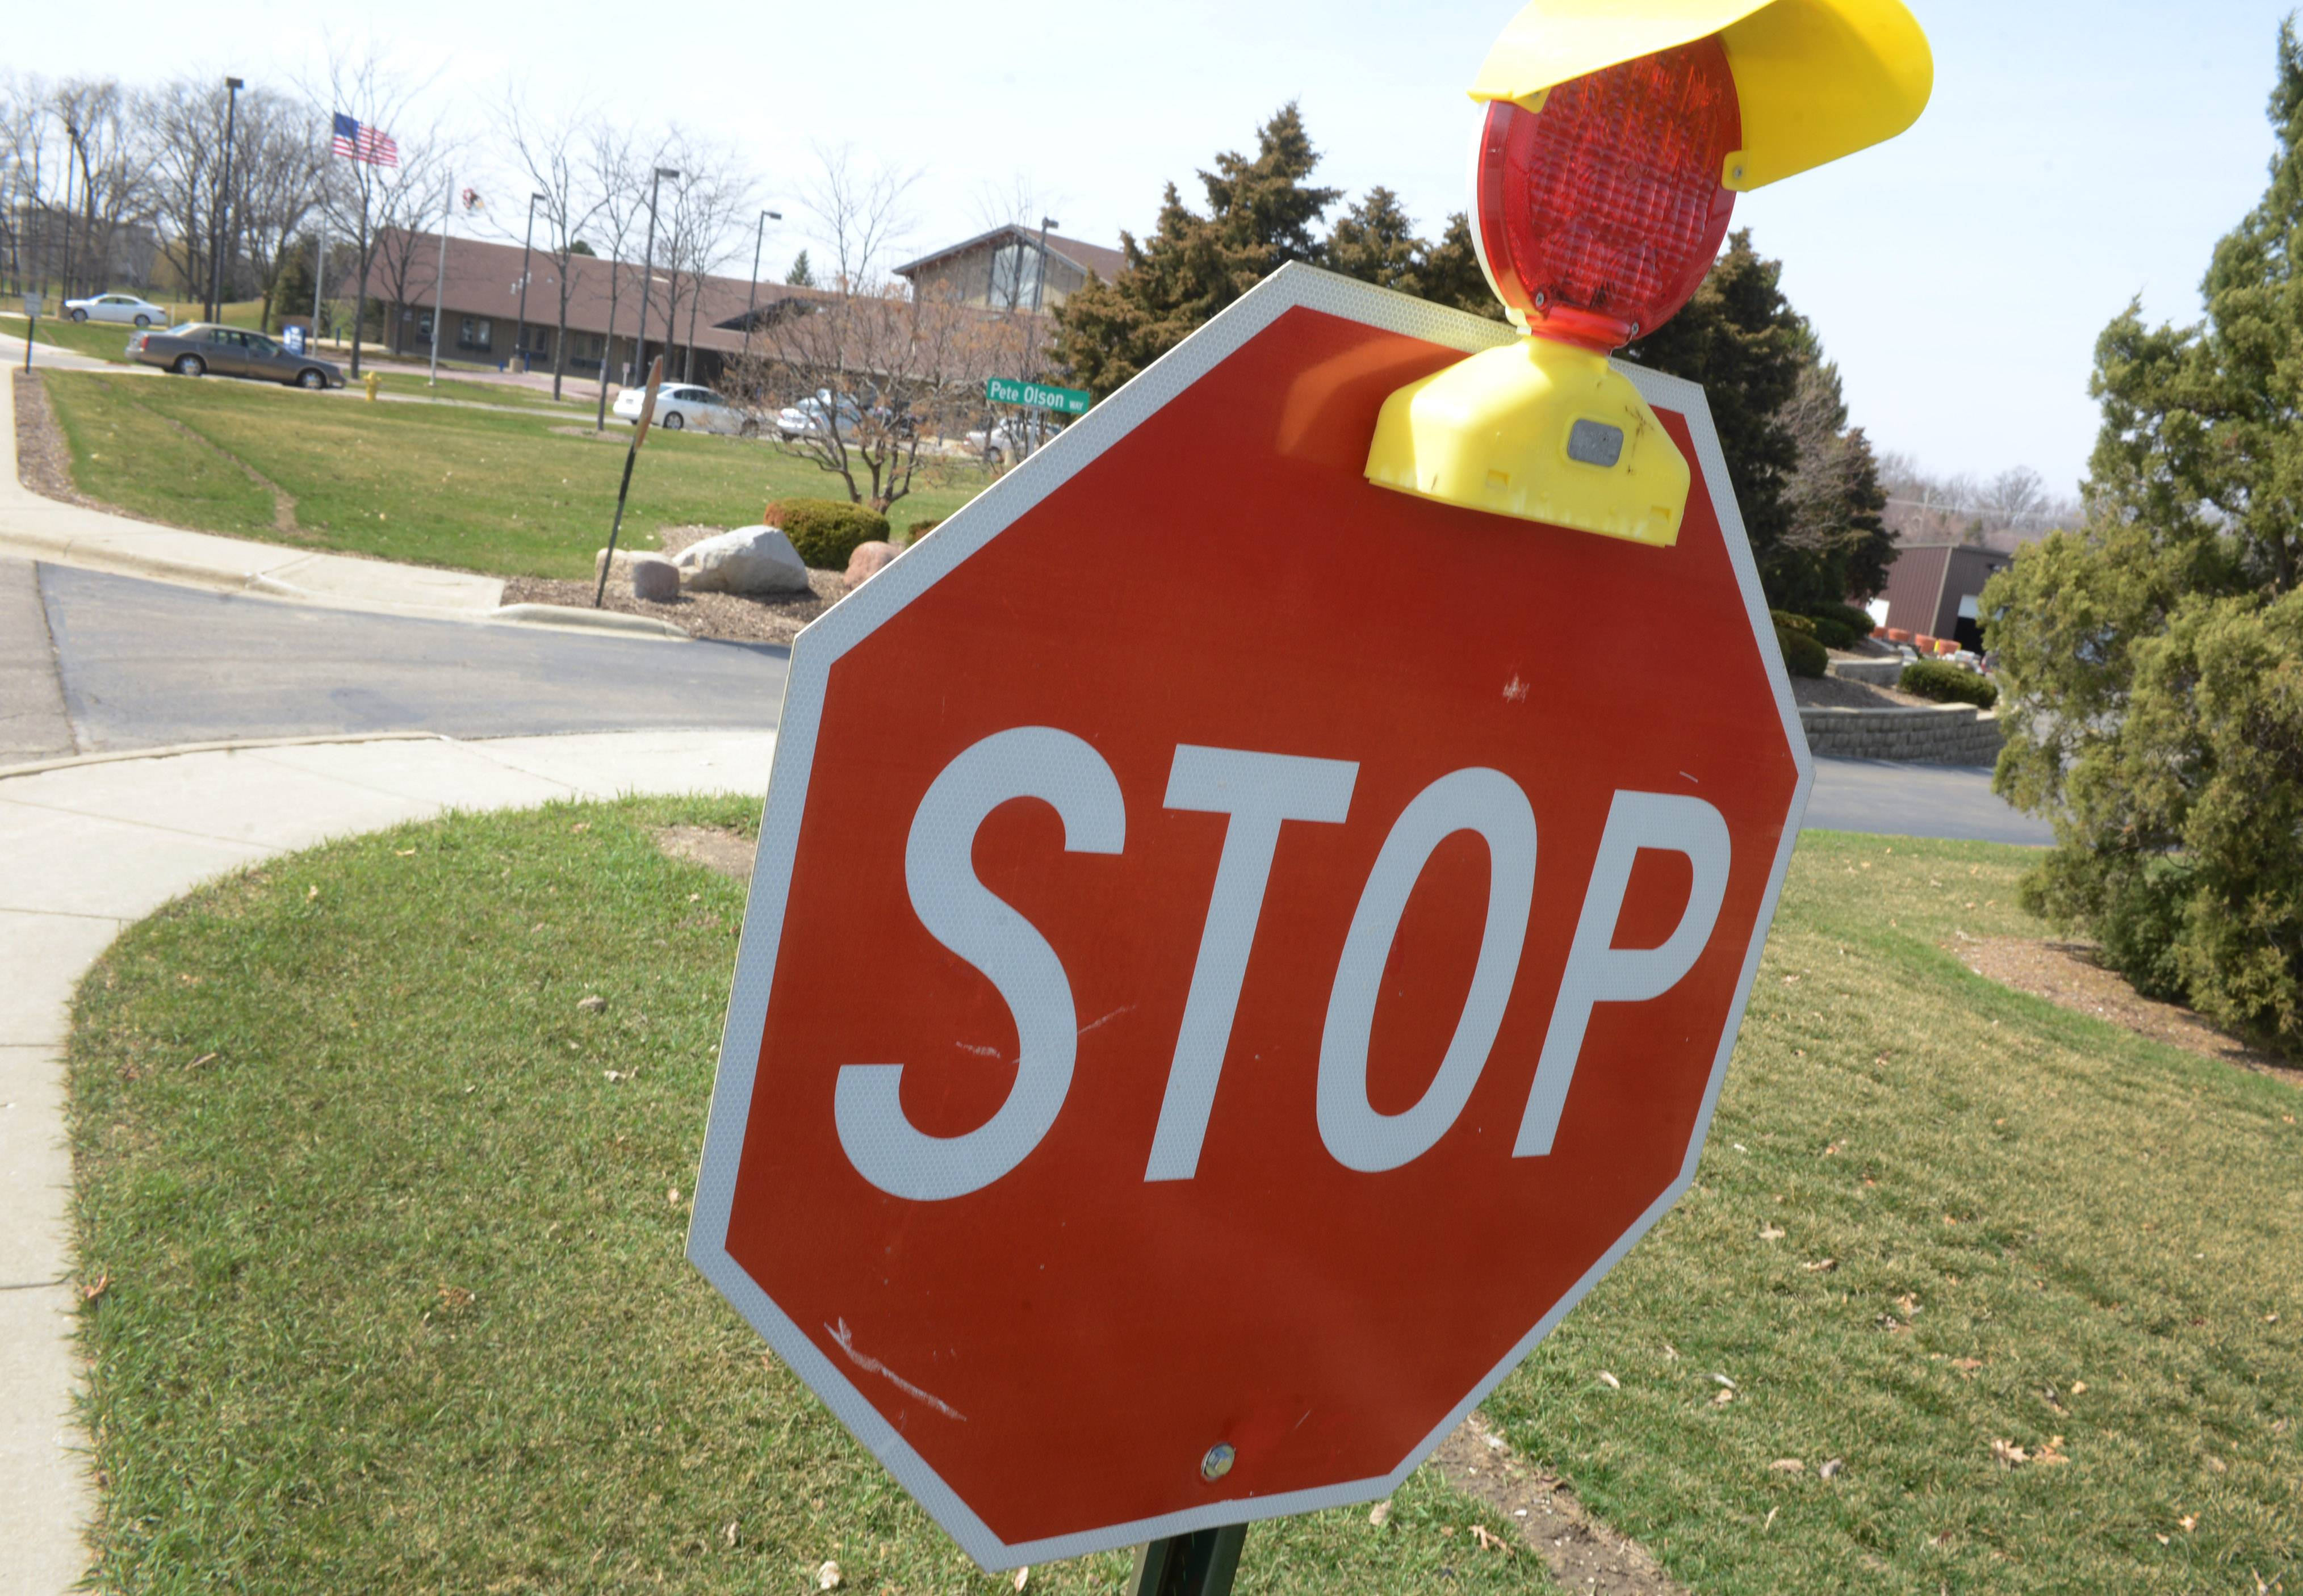 This stop sign in the Warren Township complex just outside Gurnee has a light to warn drivers at night. Township officials this week voiced concern about pedestrian safety on the busy site, saying too many drivers are running stop signs.